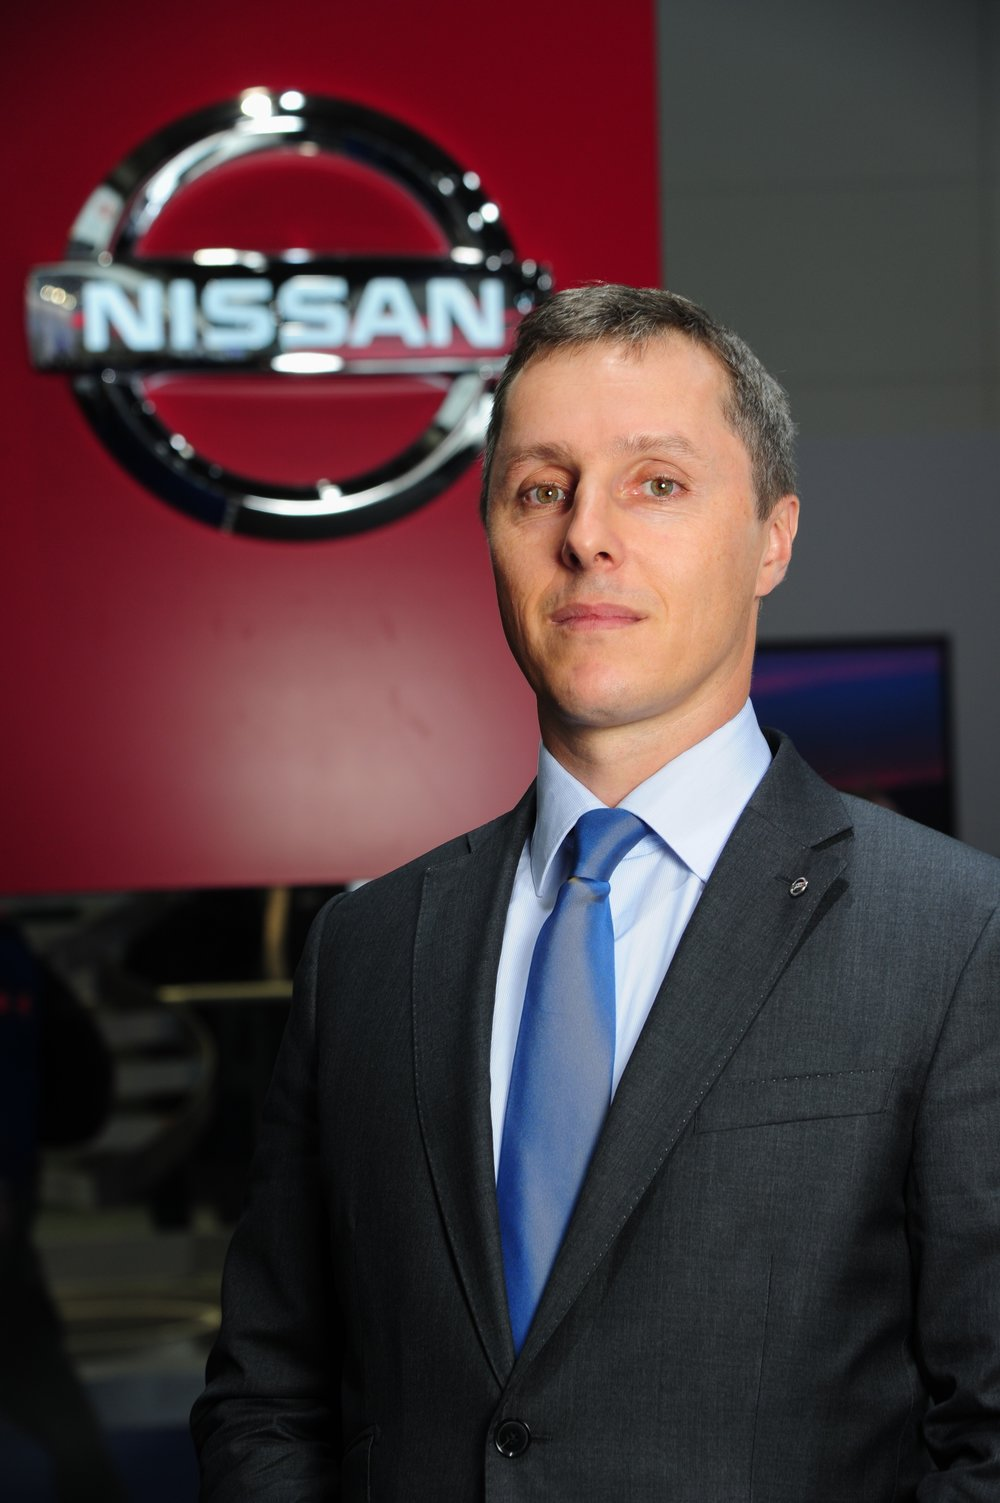 Nissan's Sponsor  - Guillaume Pelletreau,Vice President Corporate Strategy & Planning (Europe)